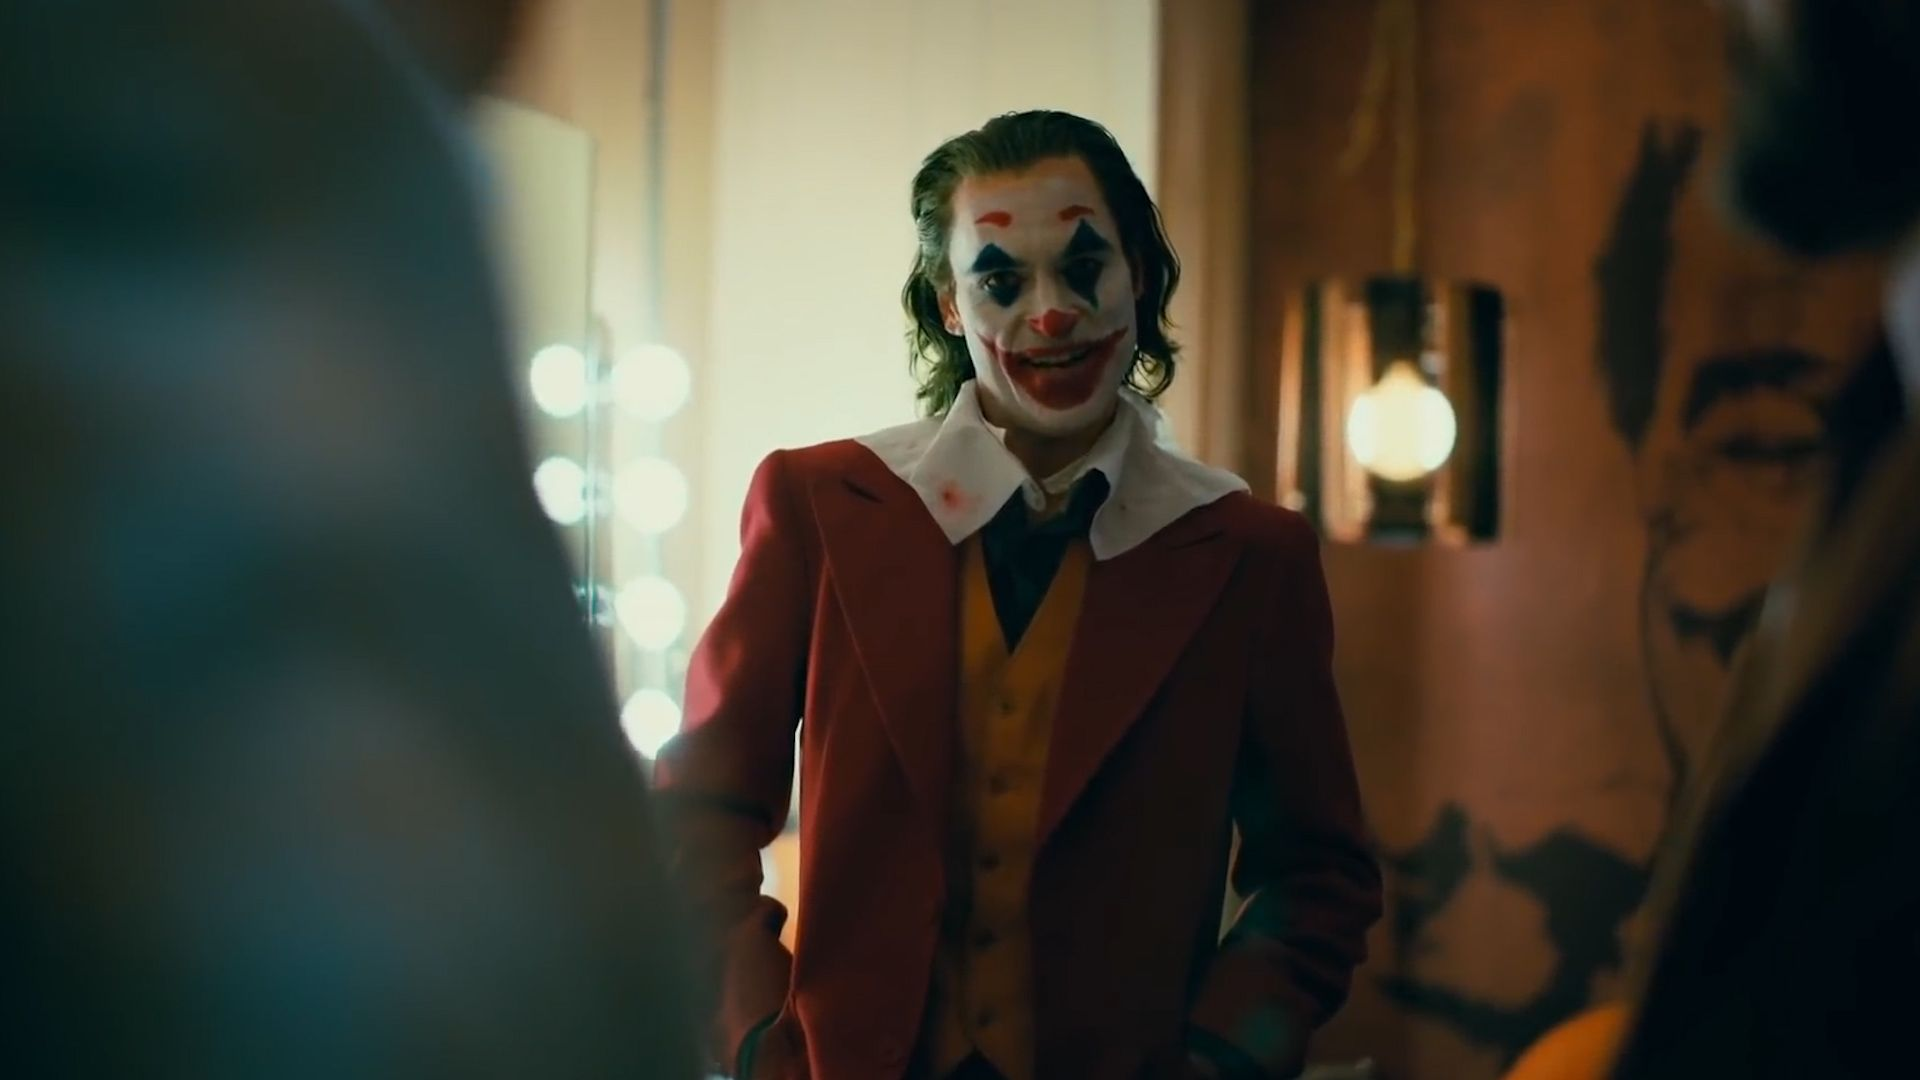 This Joker Theory Explains What Was Really Going On in That Final Scene